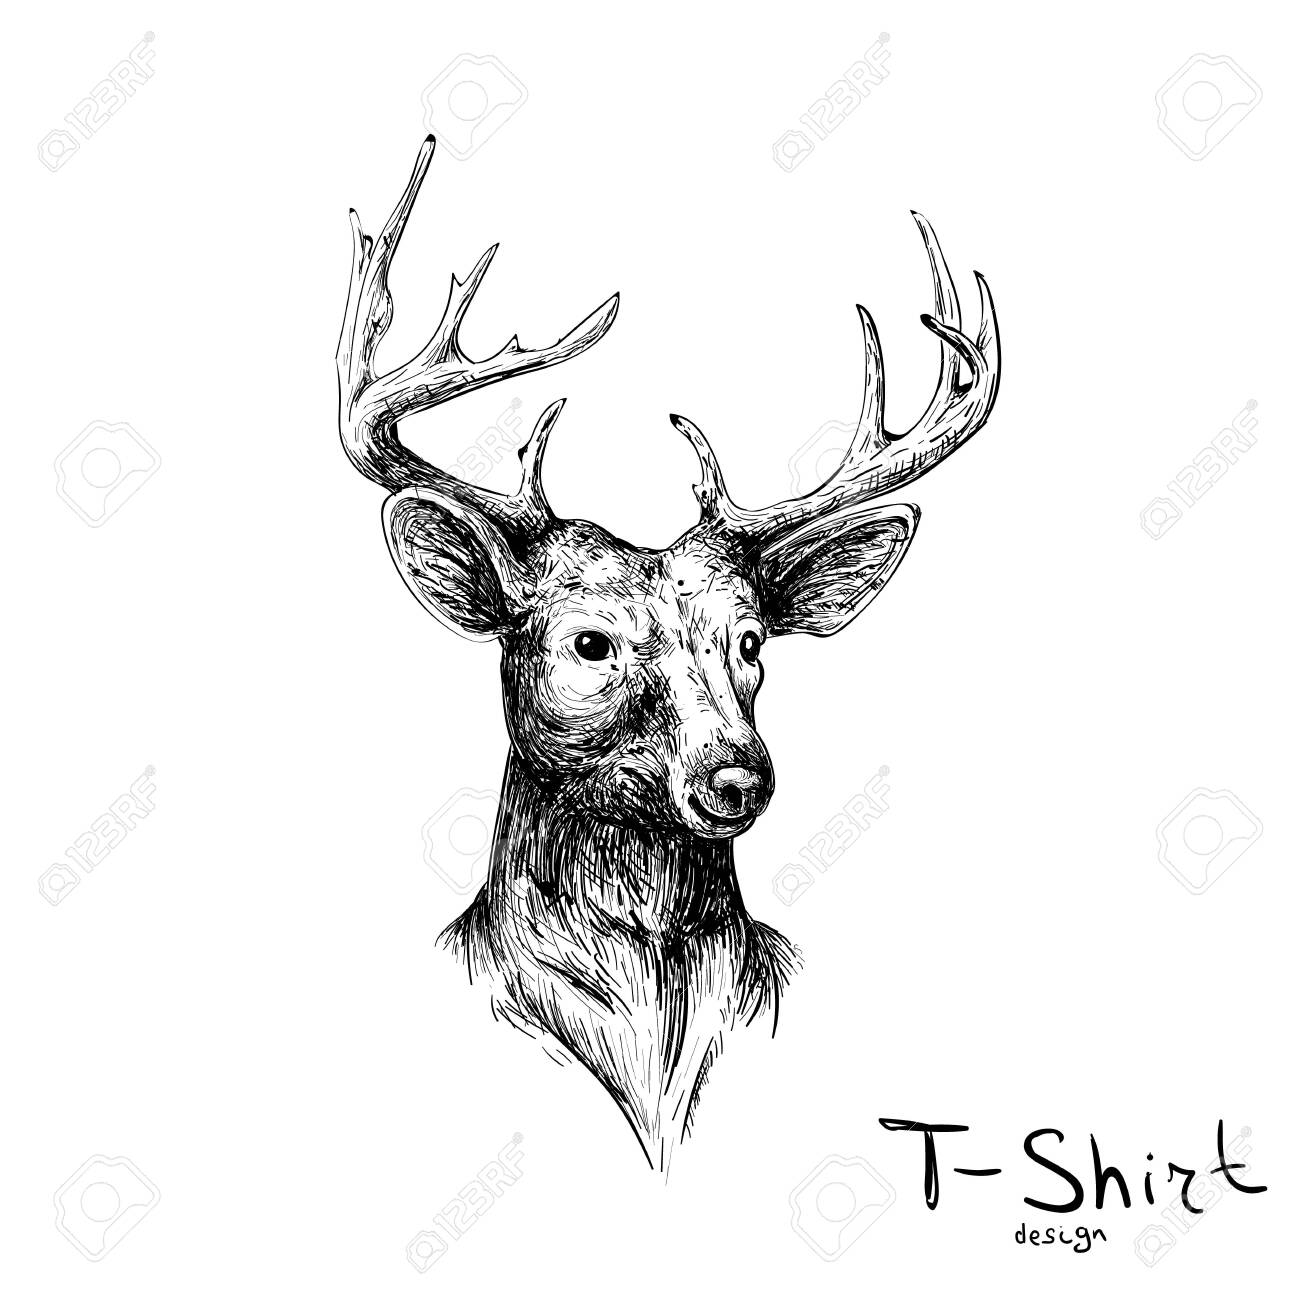 The Vector deer for tattoo or T-shirt design or outwear. Cute print style deer background for canvas - 138365165